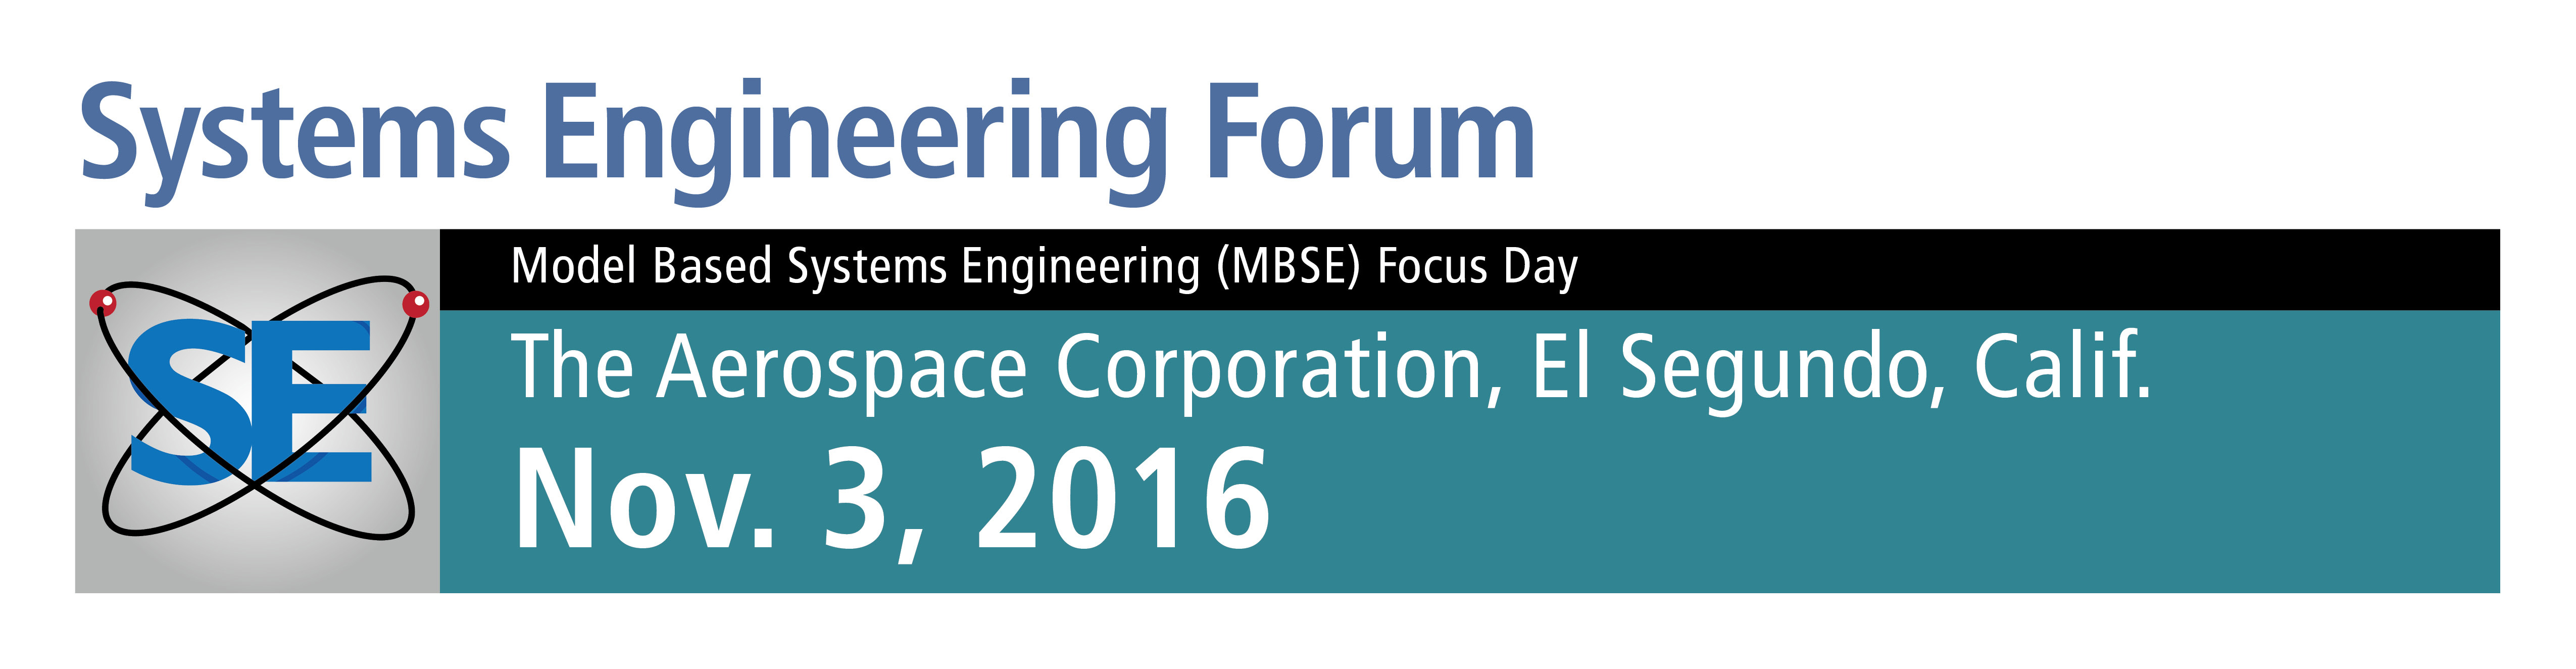 2016 Systems Engineering Forum